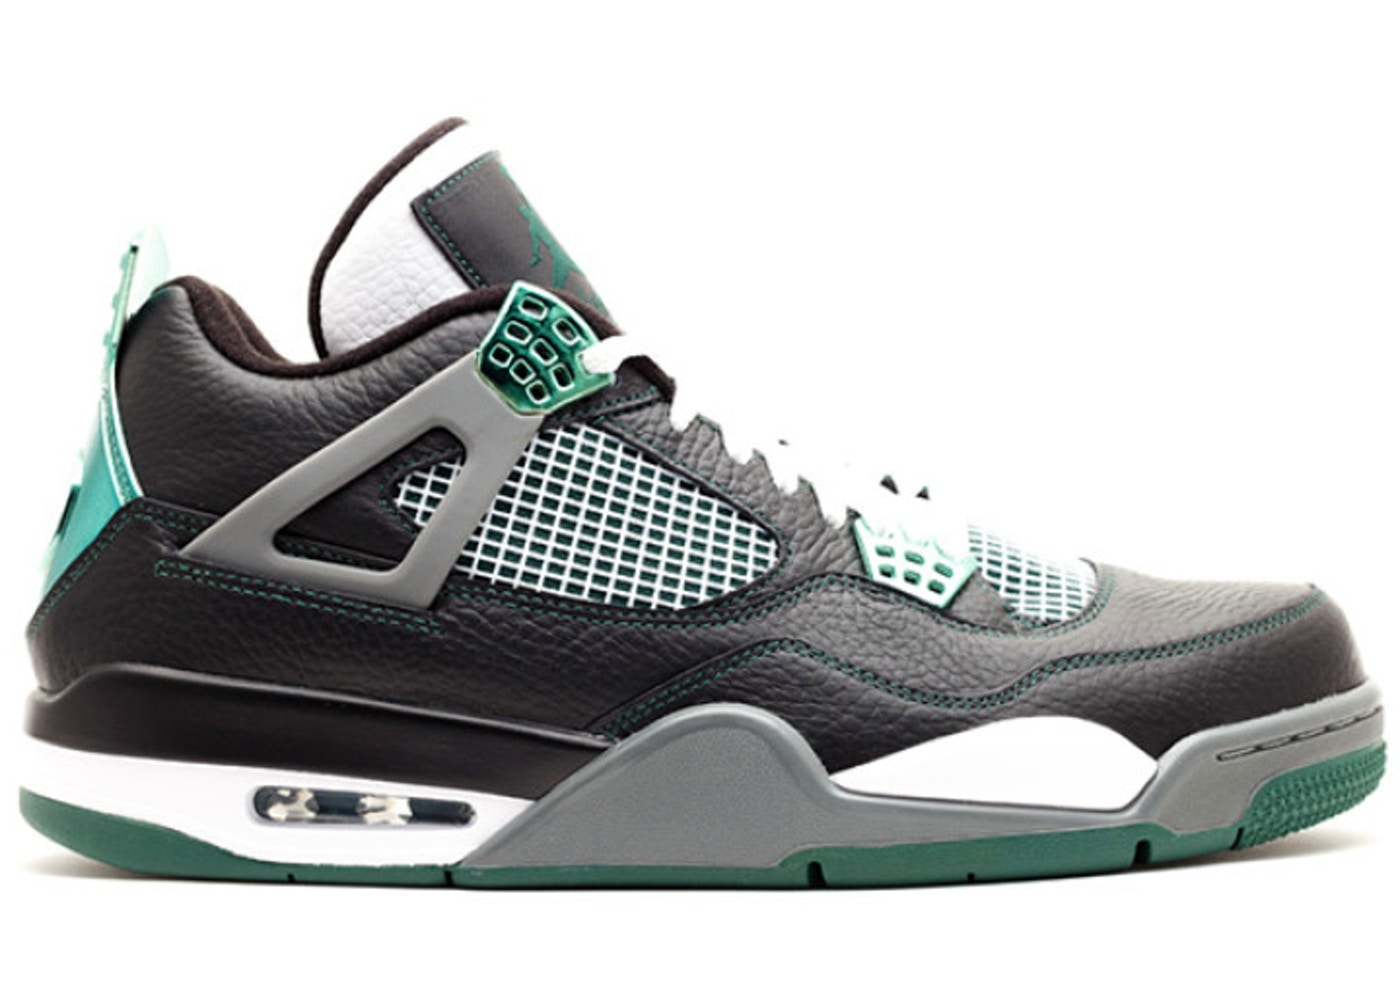 a67fd87f65d14 Jordan 4 Retro Oregon Ducks - FA12-MNJDLS-267-3563